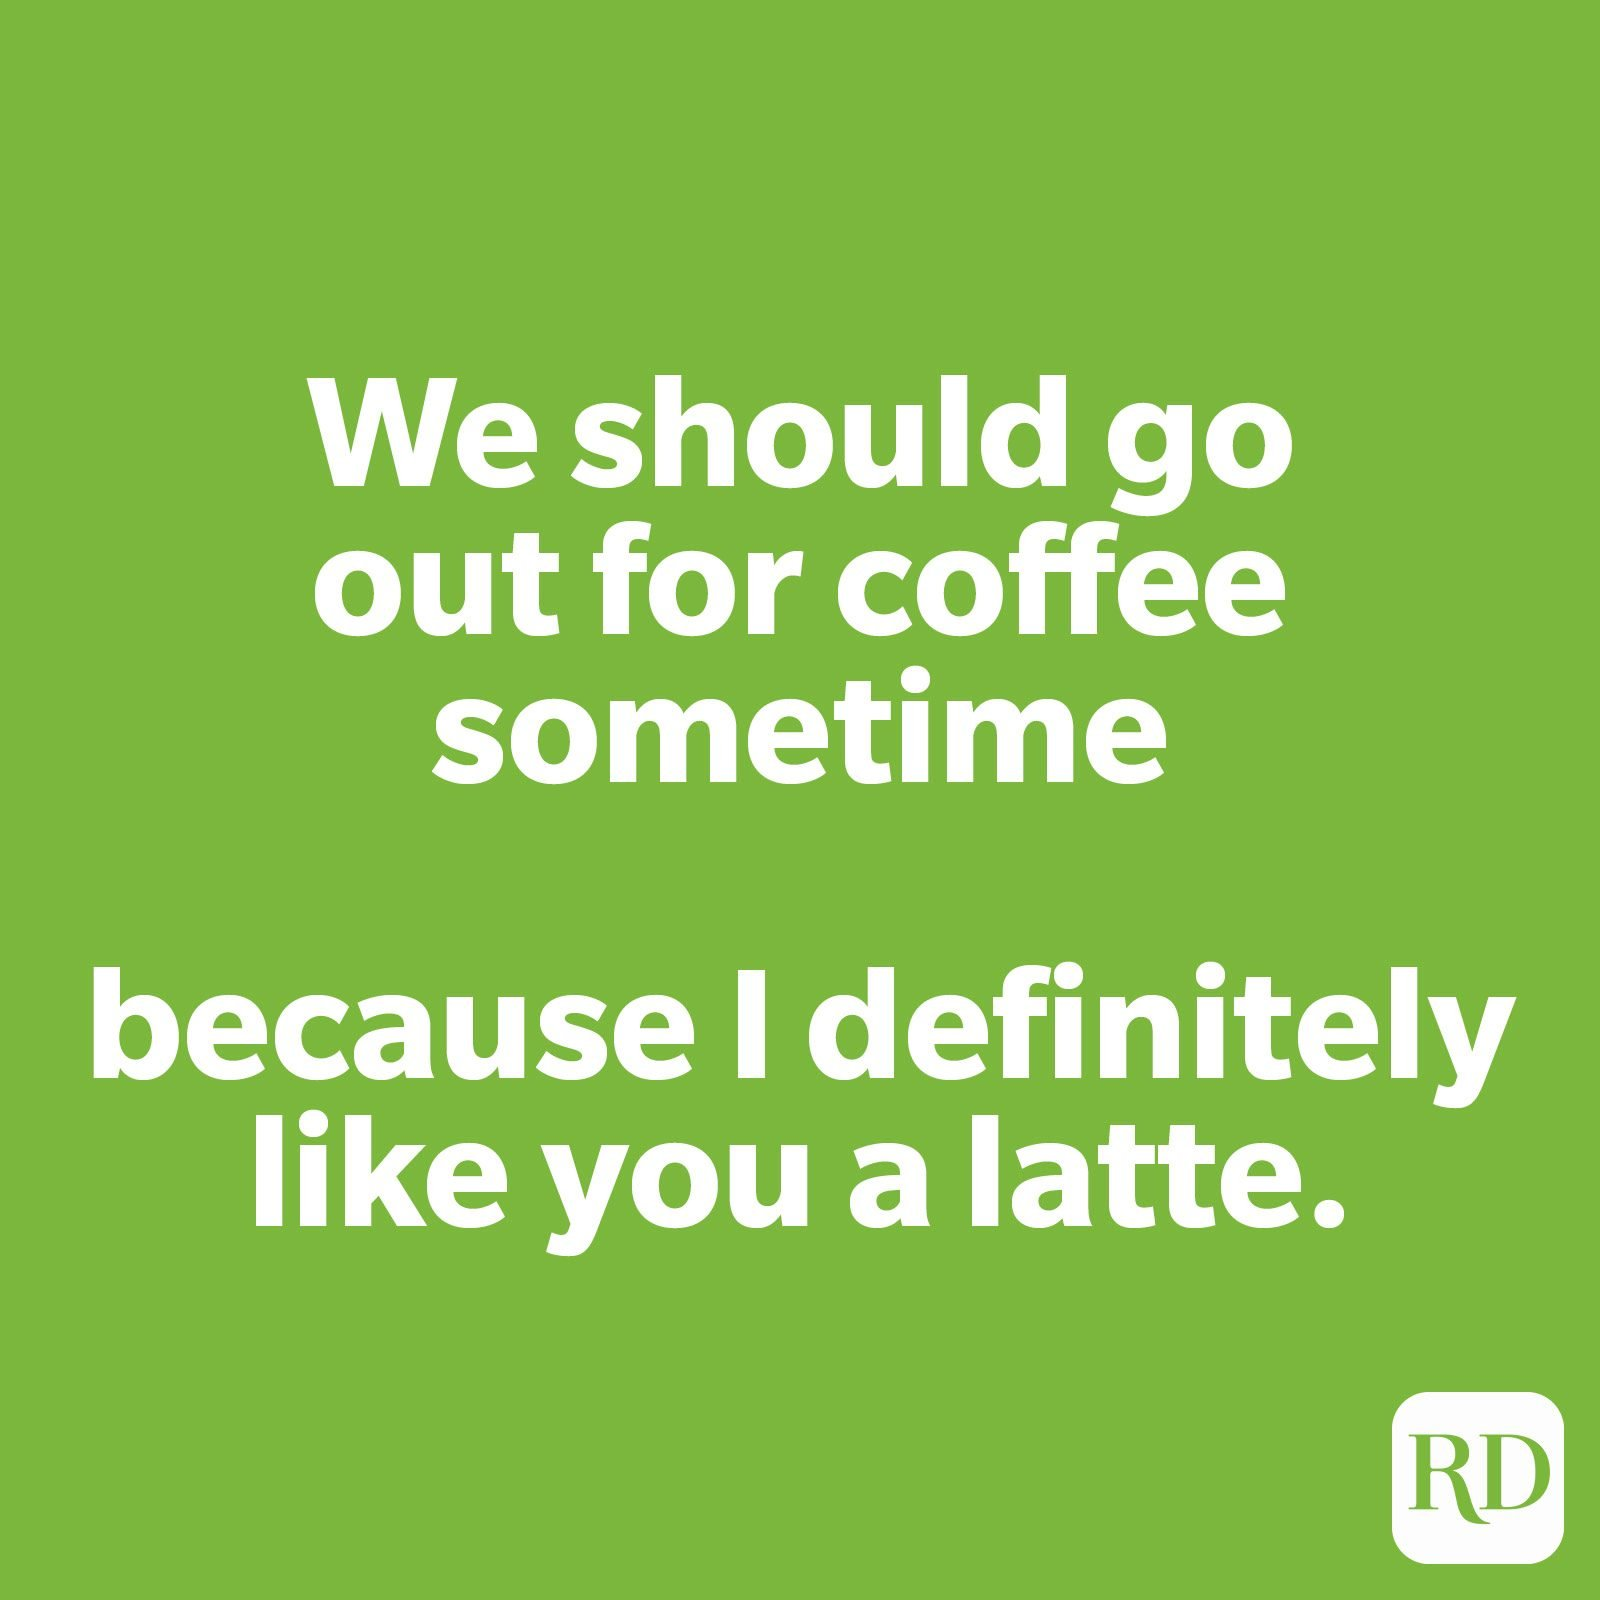 We should go out for coffee sometimes because I definitely like you a latte.